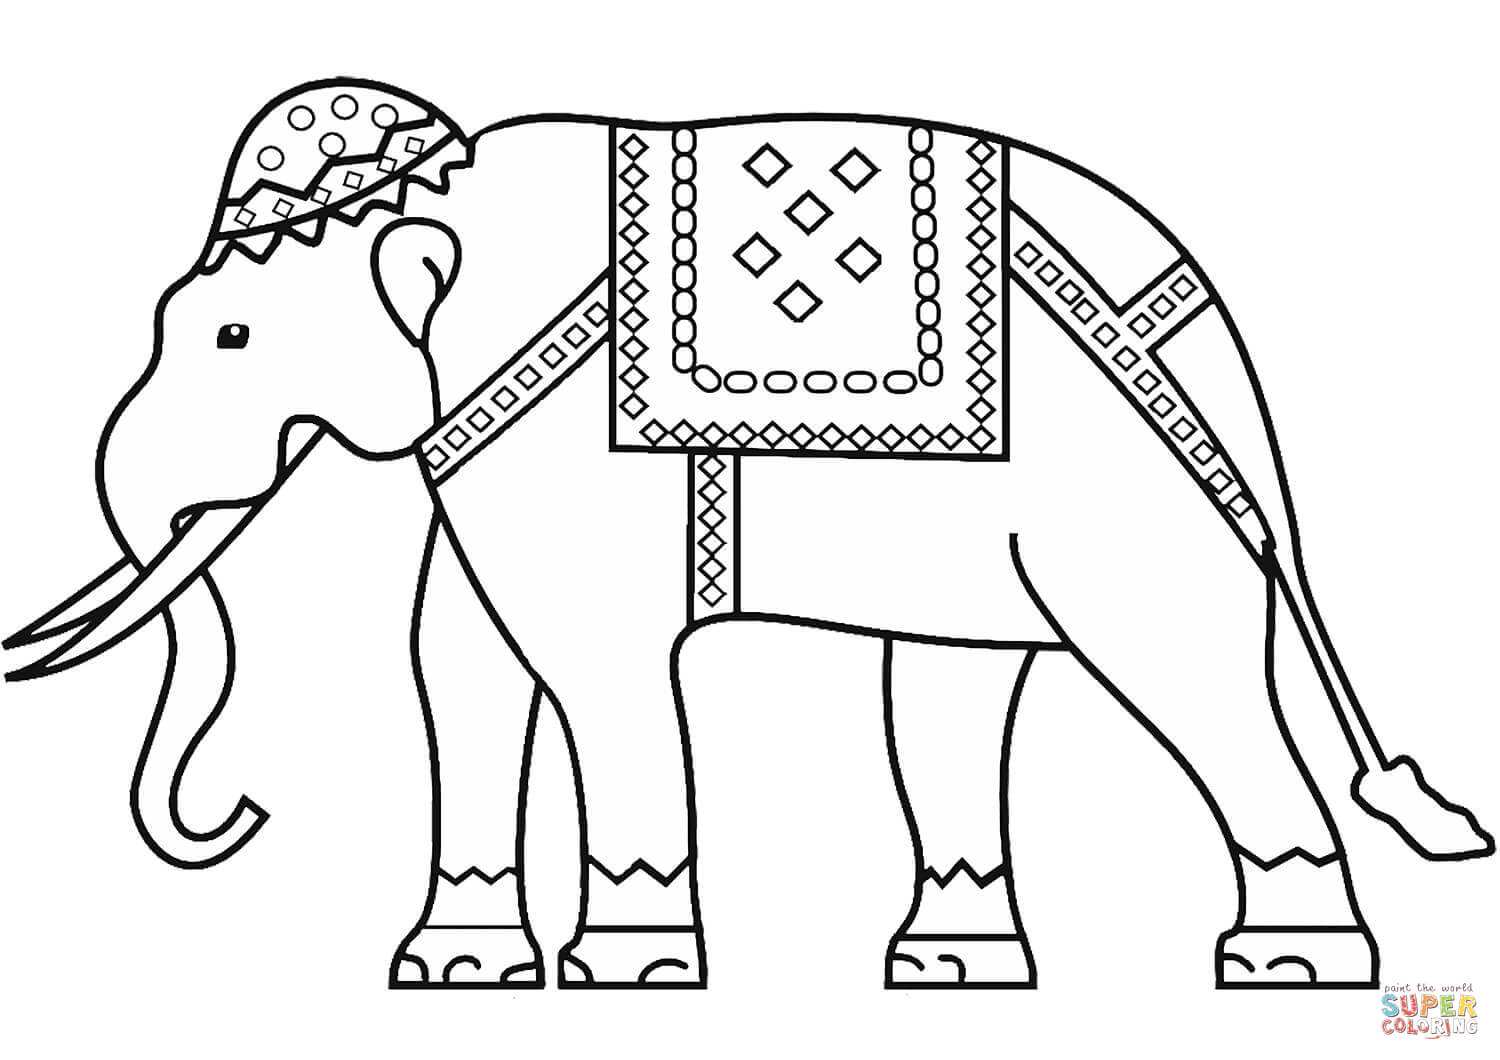 Indian Elephant Coloring Page | Free Printable Coloring Pages - Printable Elephant Puzzle